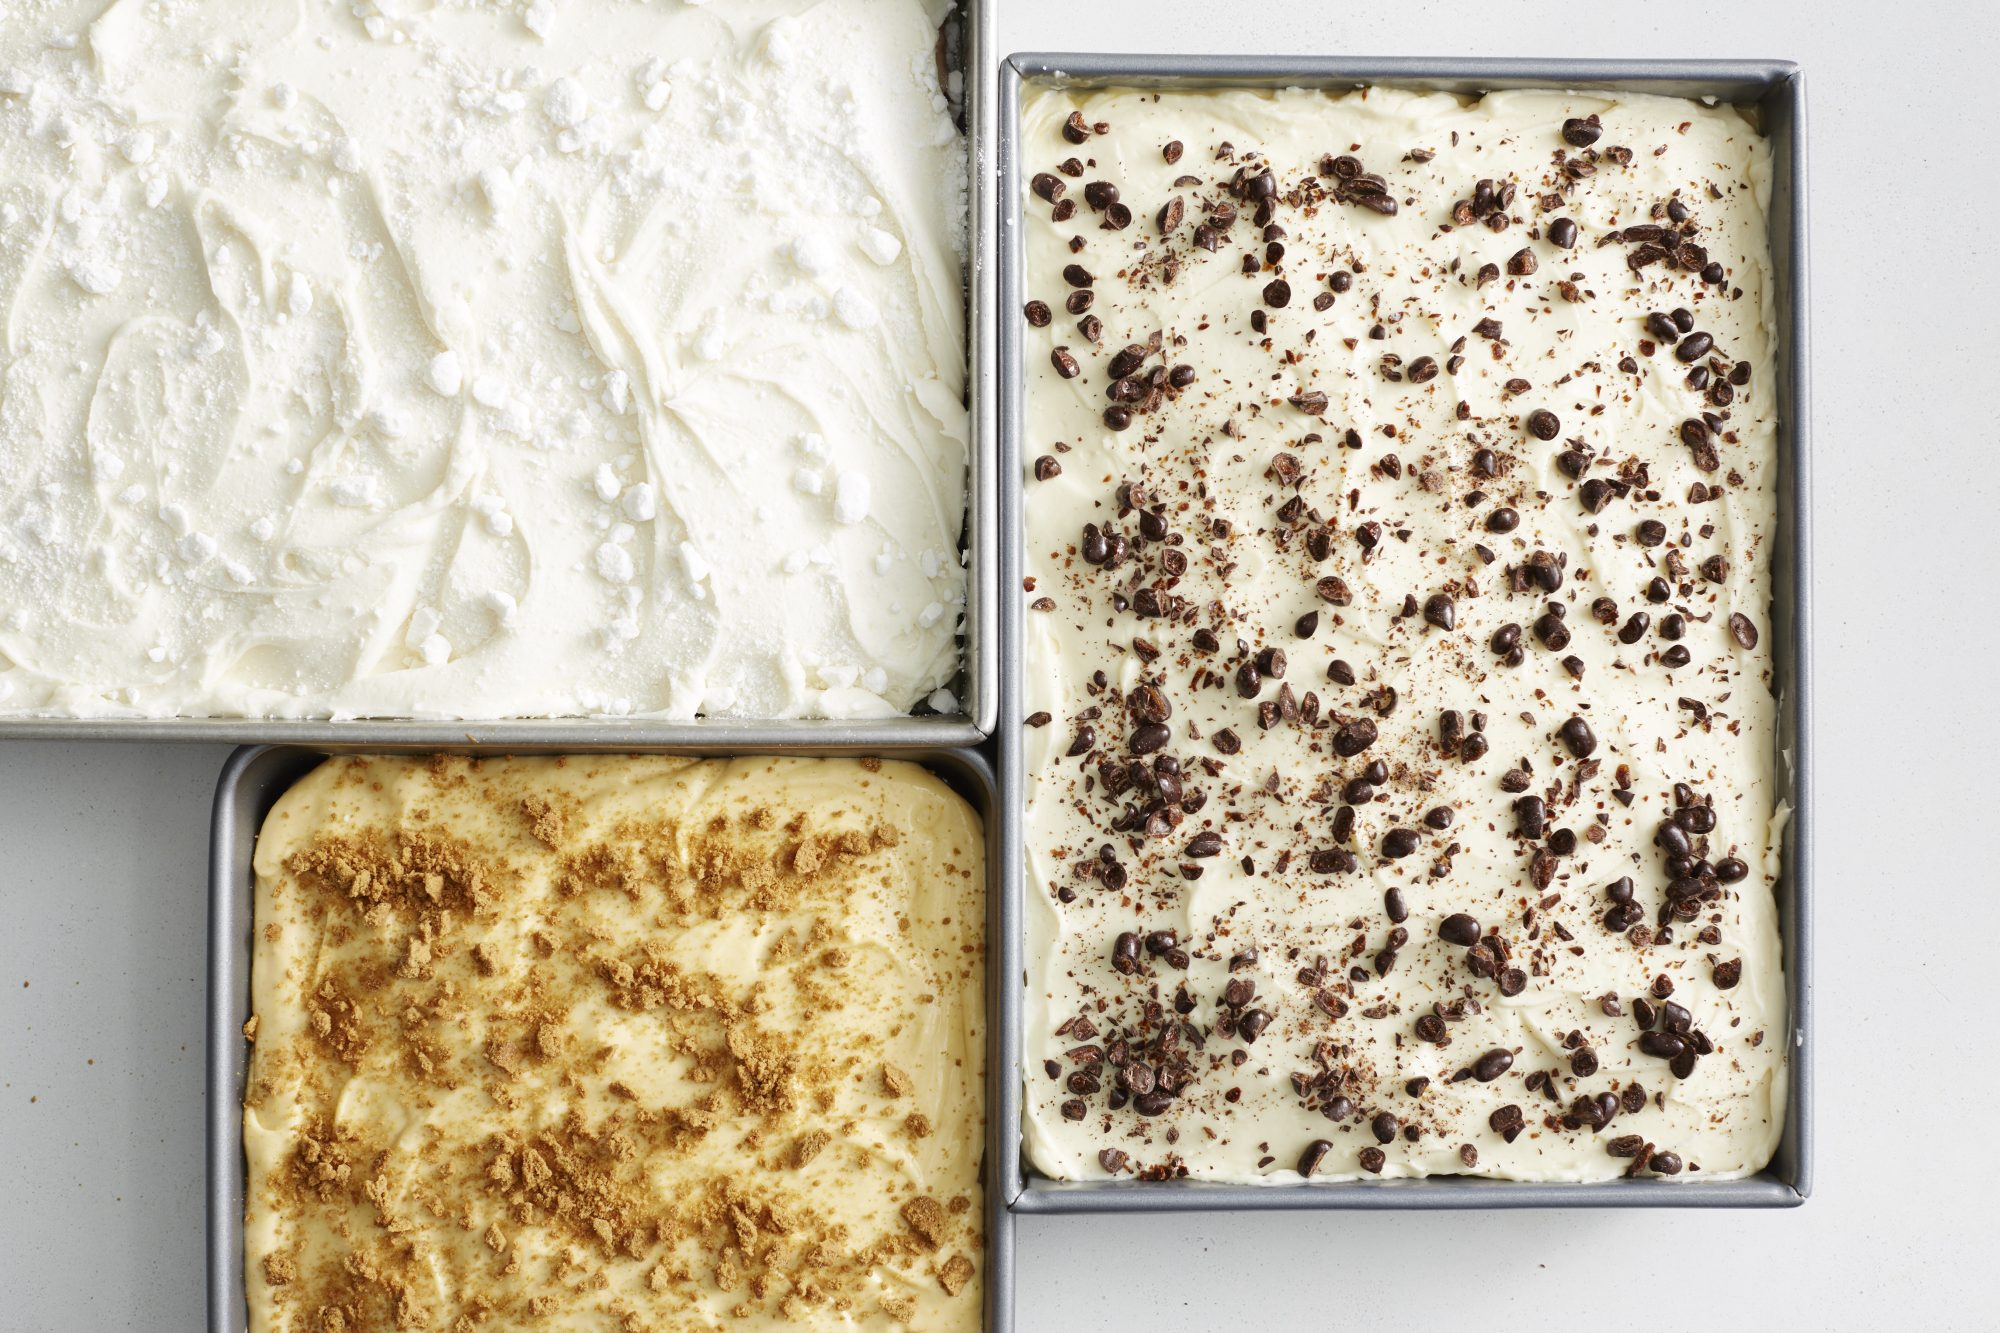 8 Reasons Poke Cake is the Cake to Make This Holiday Season